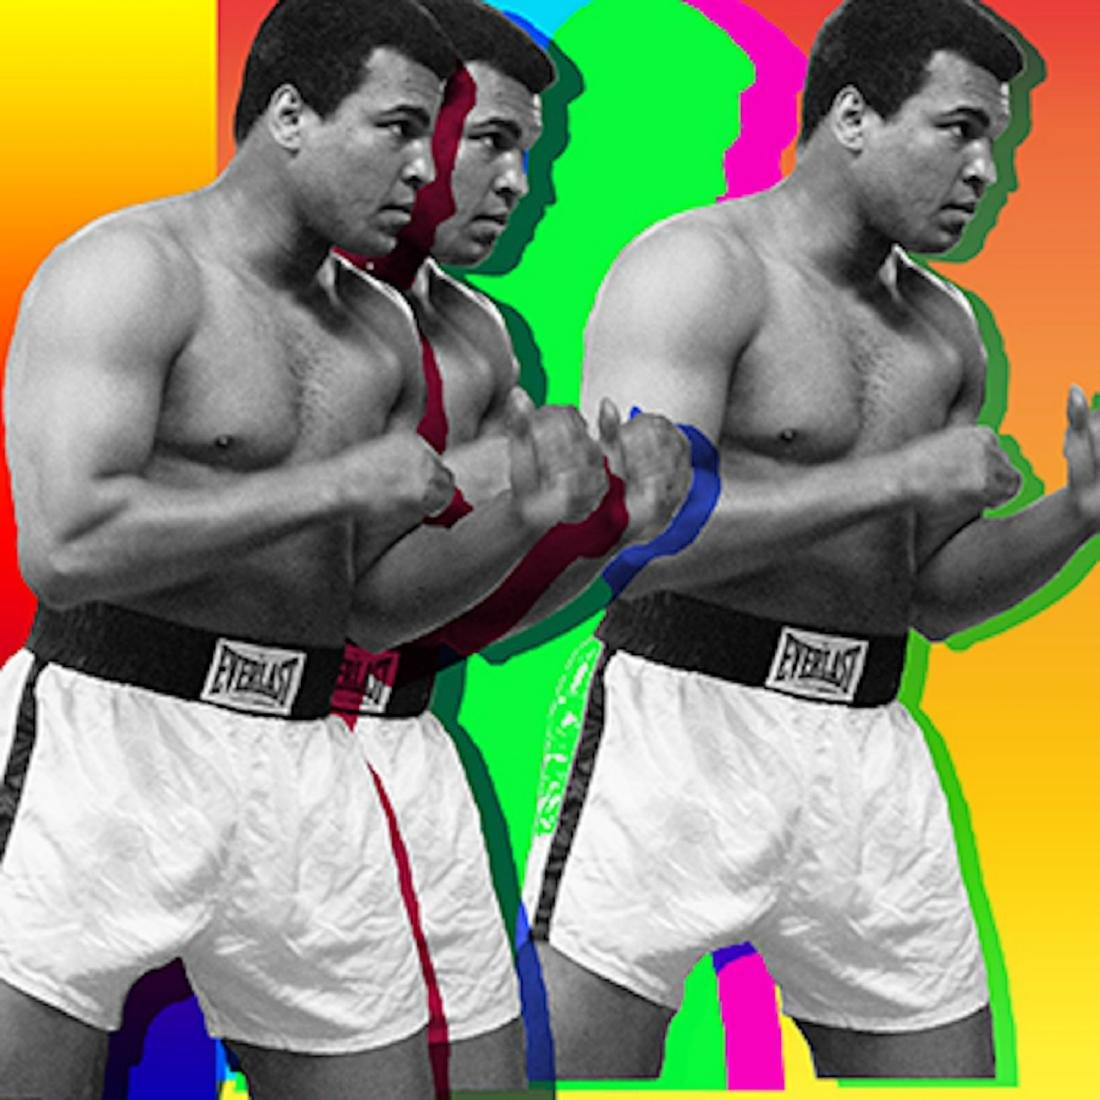 Muhammad Ali - 3 Ali's Pop Art